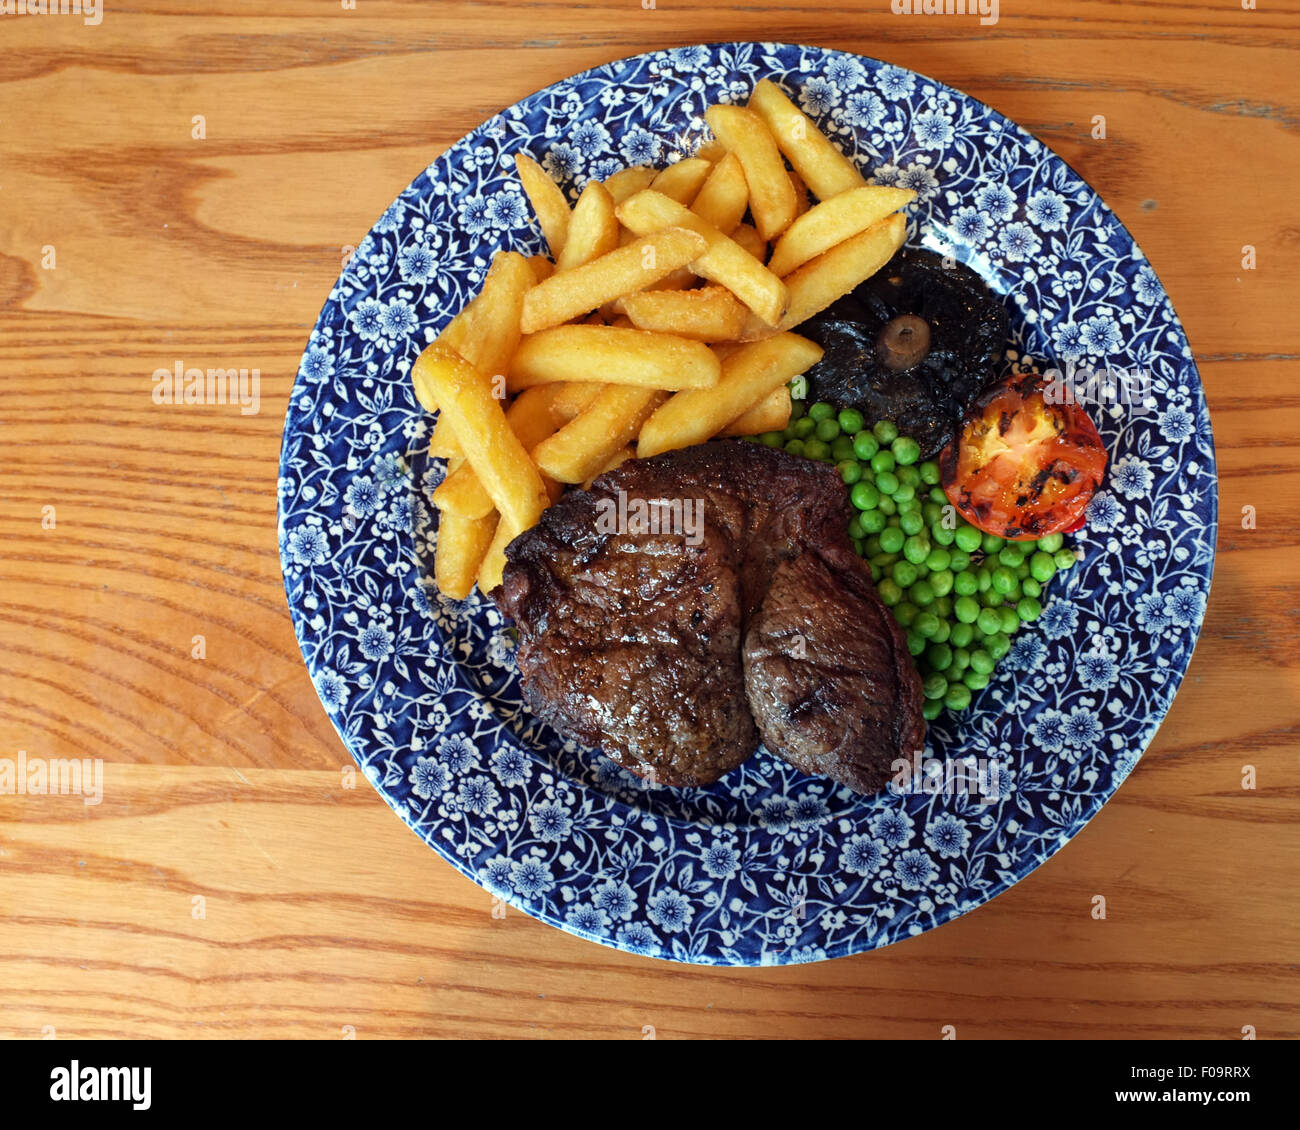 Steak & Chips meal on a blue and white plate. - Stock Image